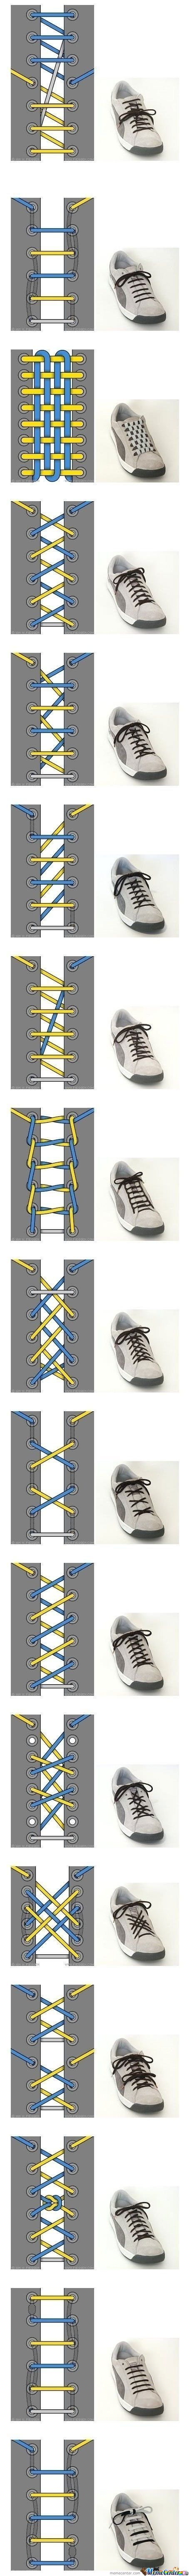 Cool Ways To Tie Your Shoes